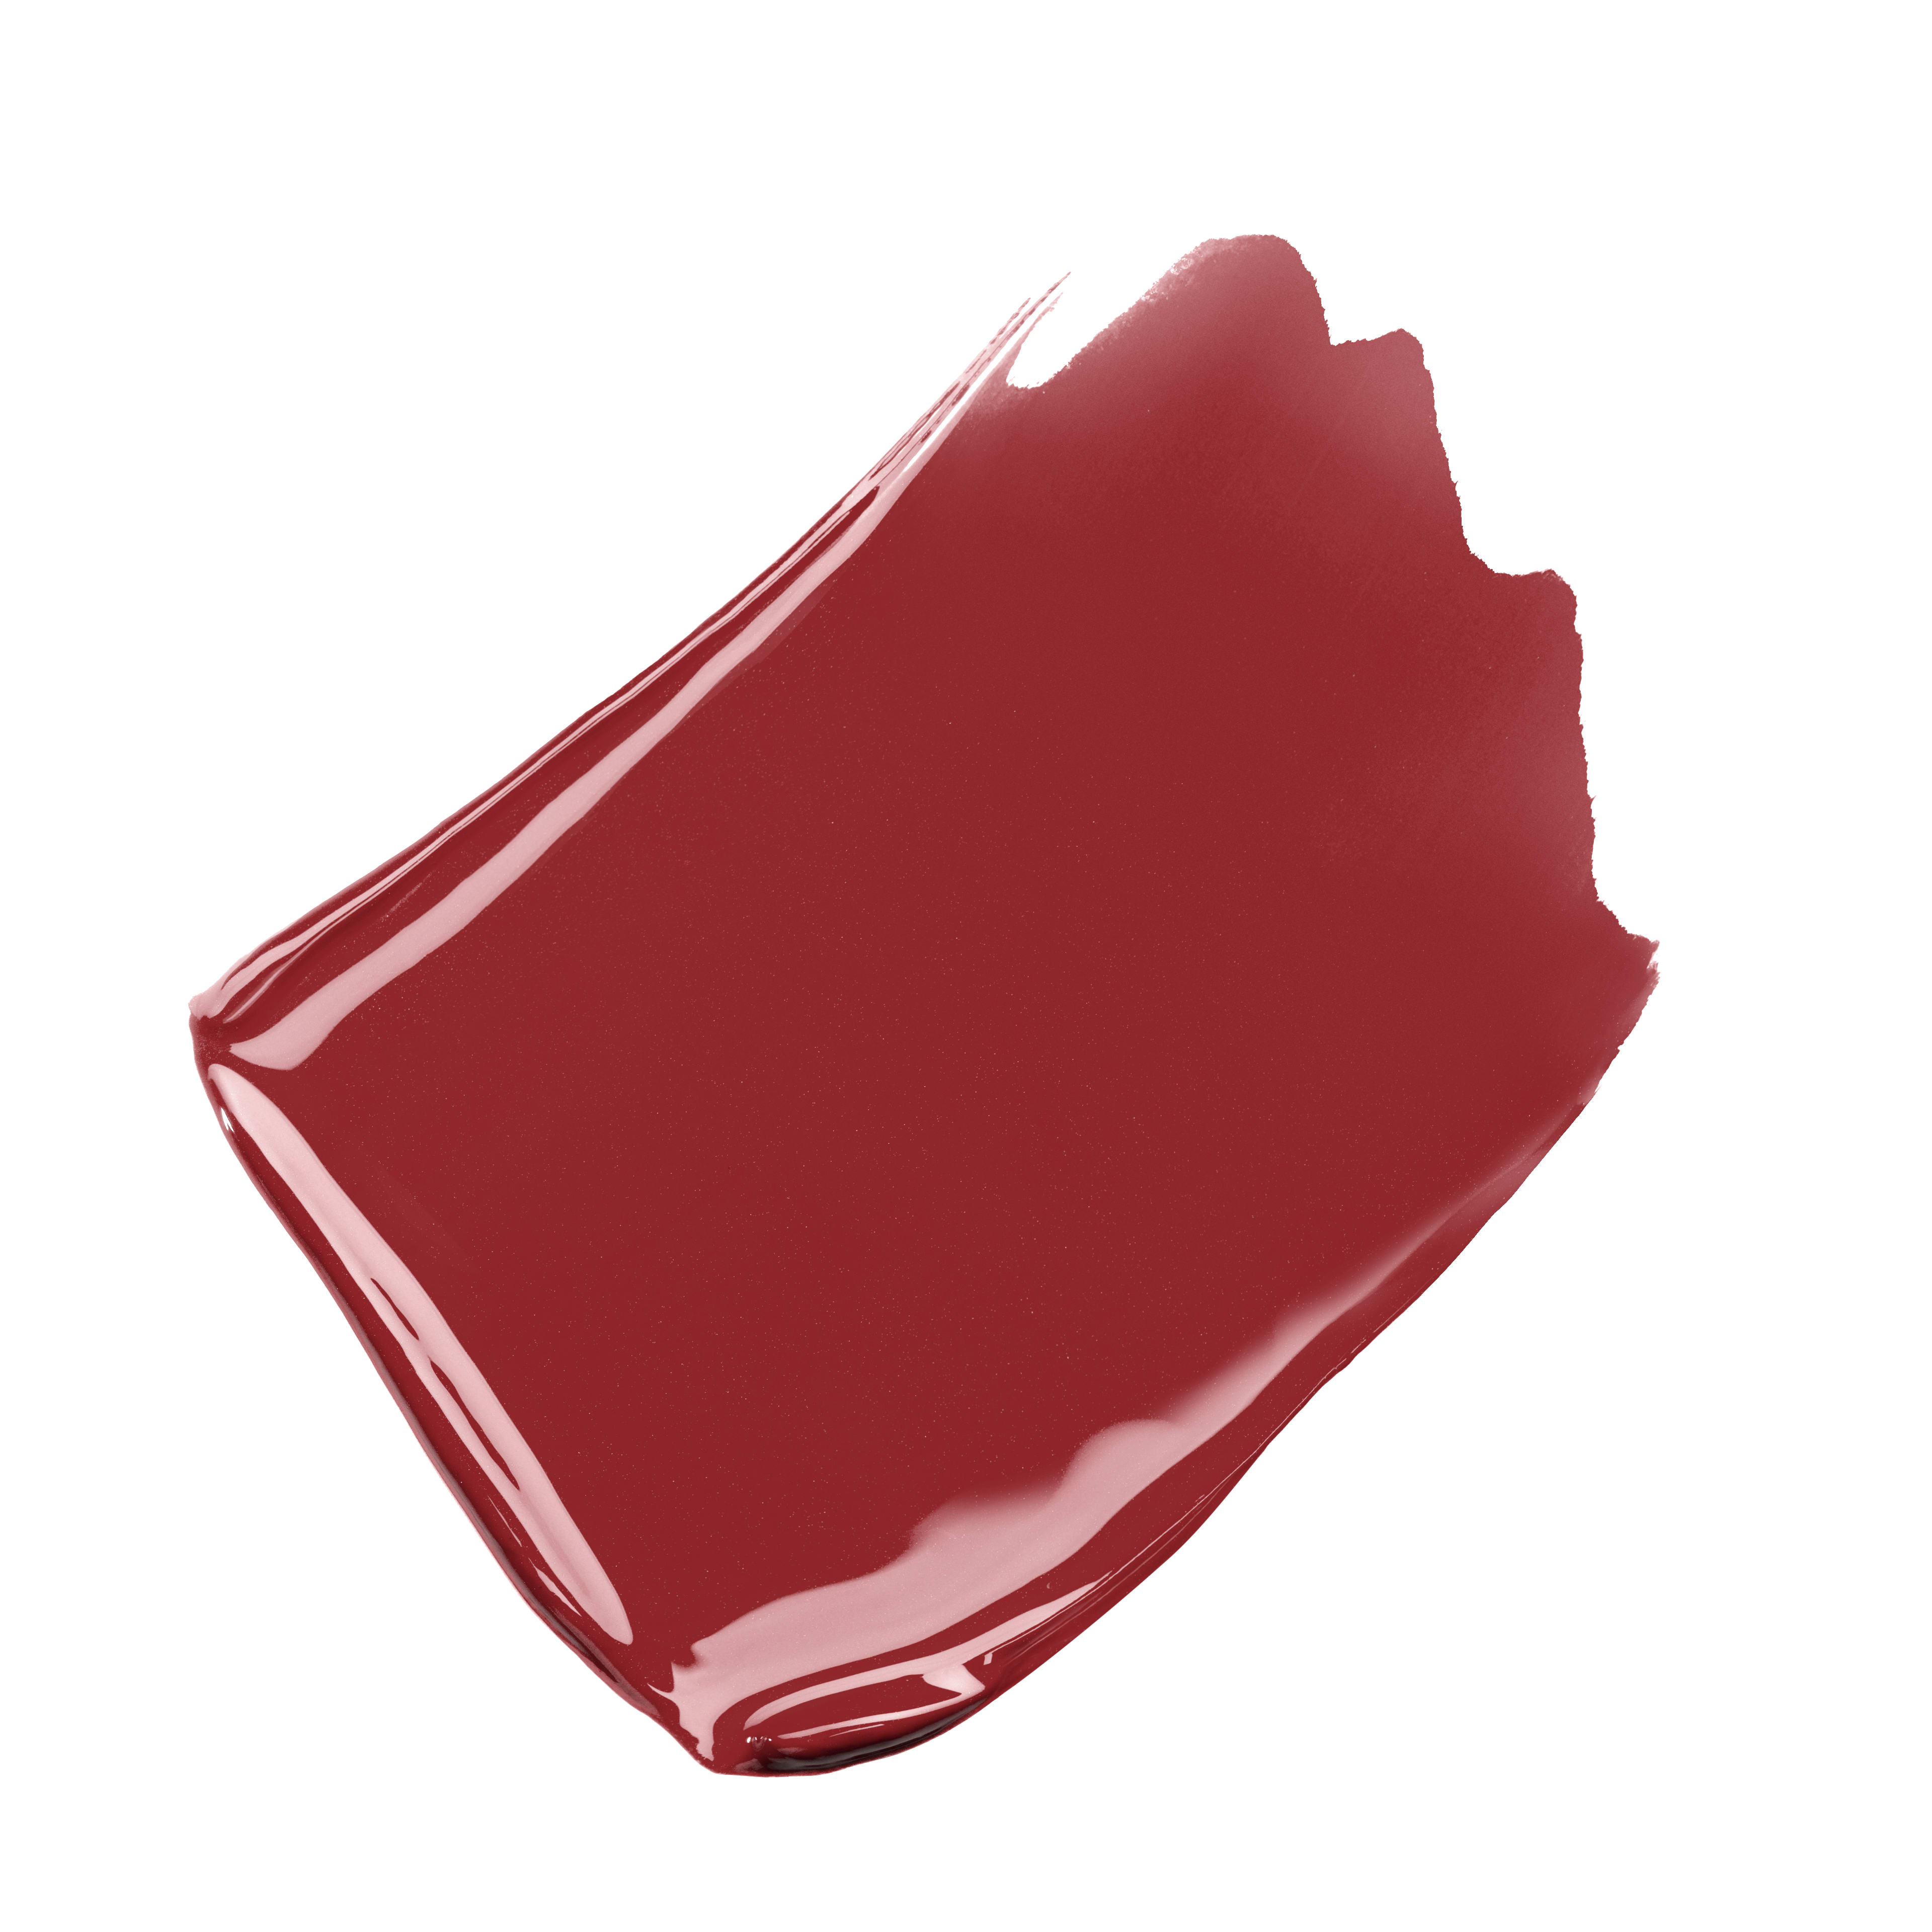 ROUGE DOUBLE INTENSITÉ - makeup - 0.1OZ. -                                                                 alternative view - see full sized version